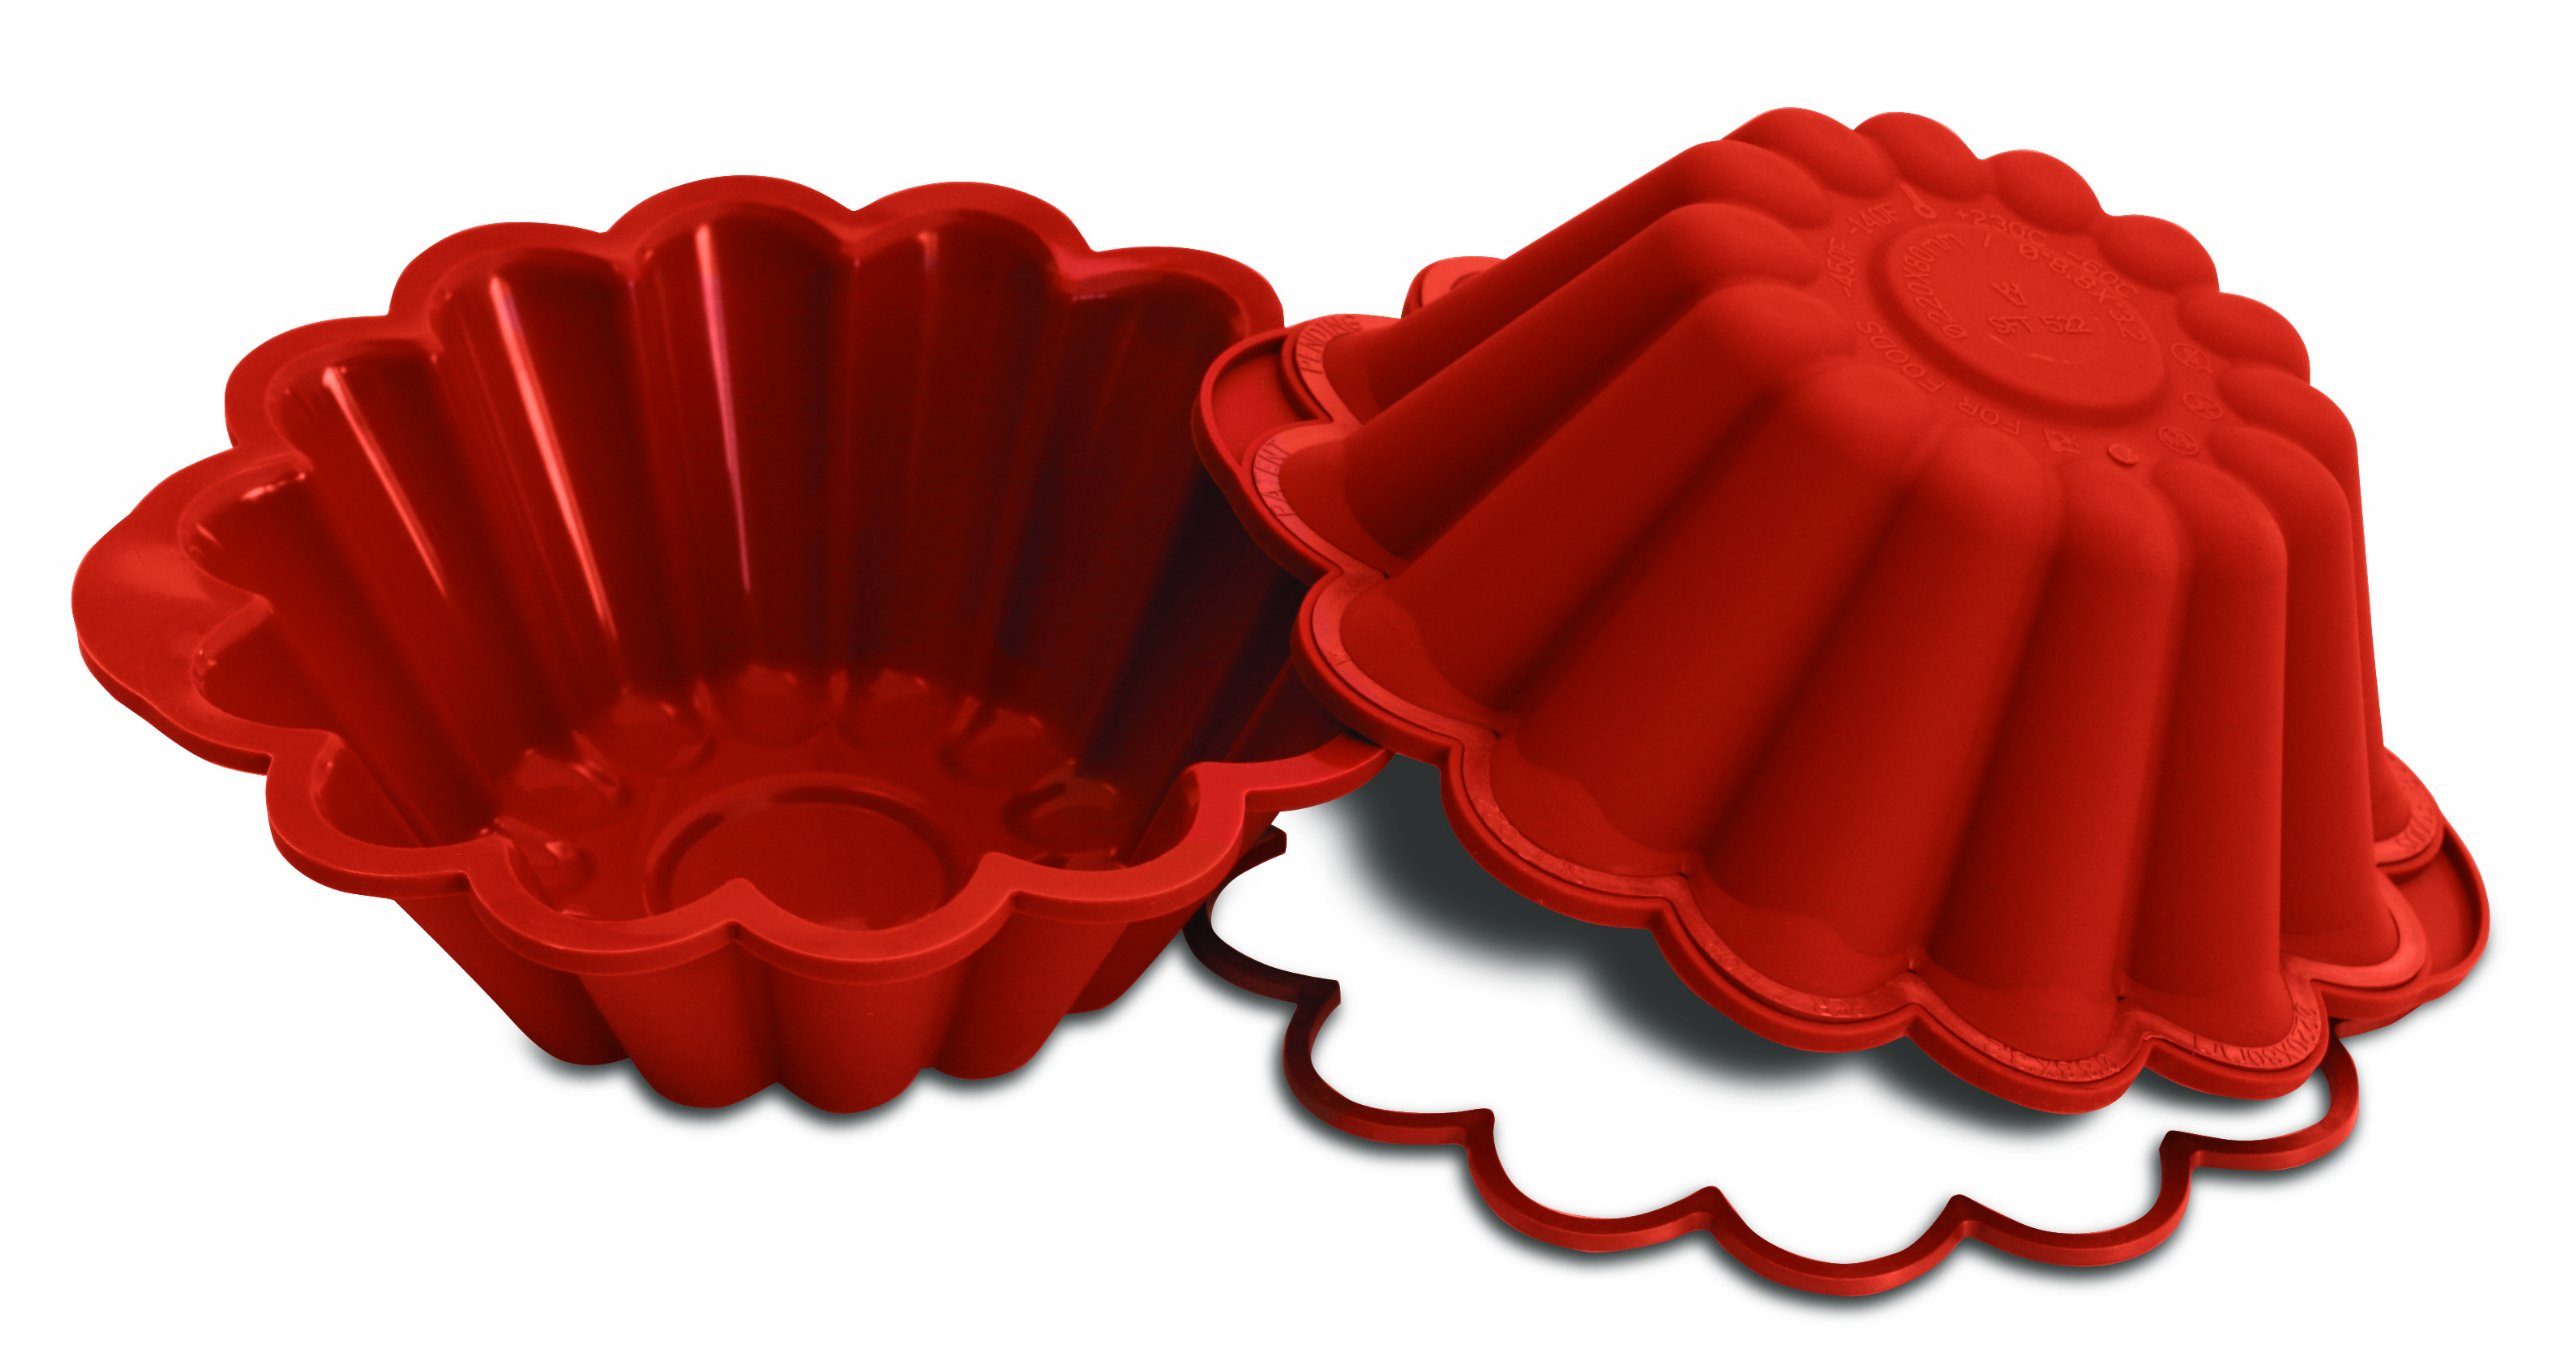 Silikomart SFT522/C Silicone Classic Collection Brioche Pan, 9-Inch by Silikomart (Image #1)